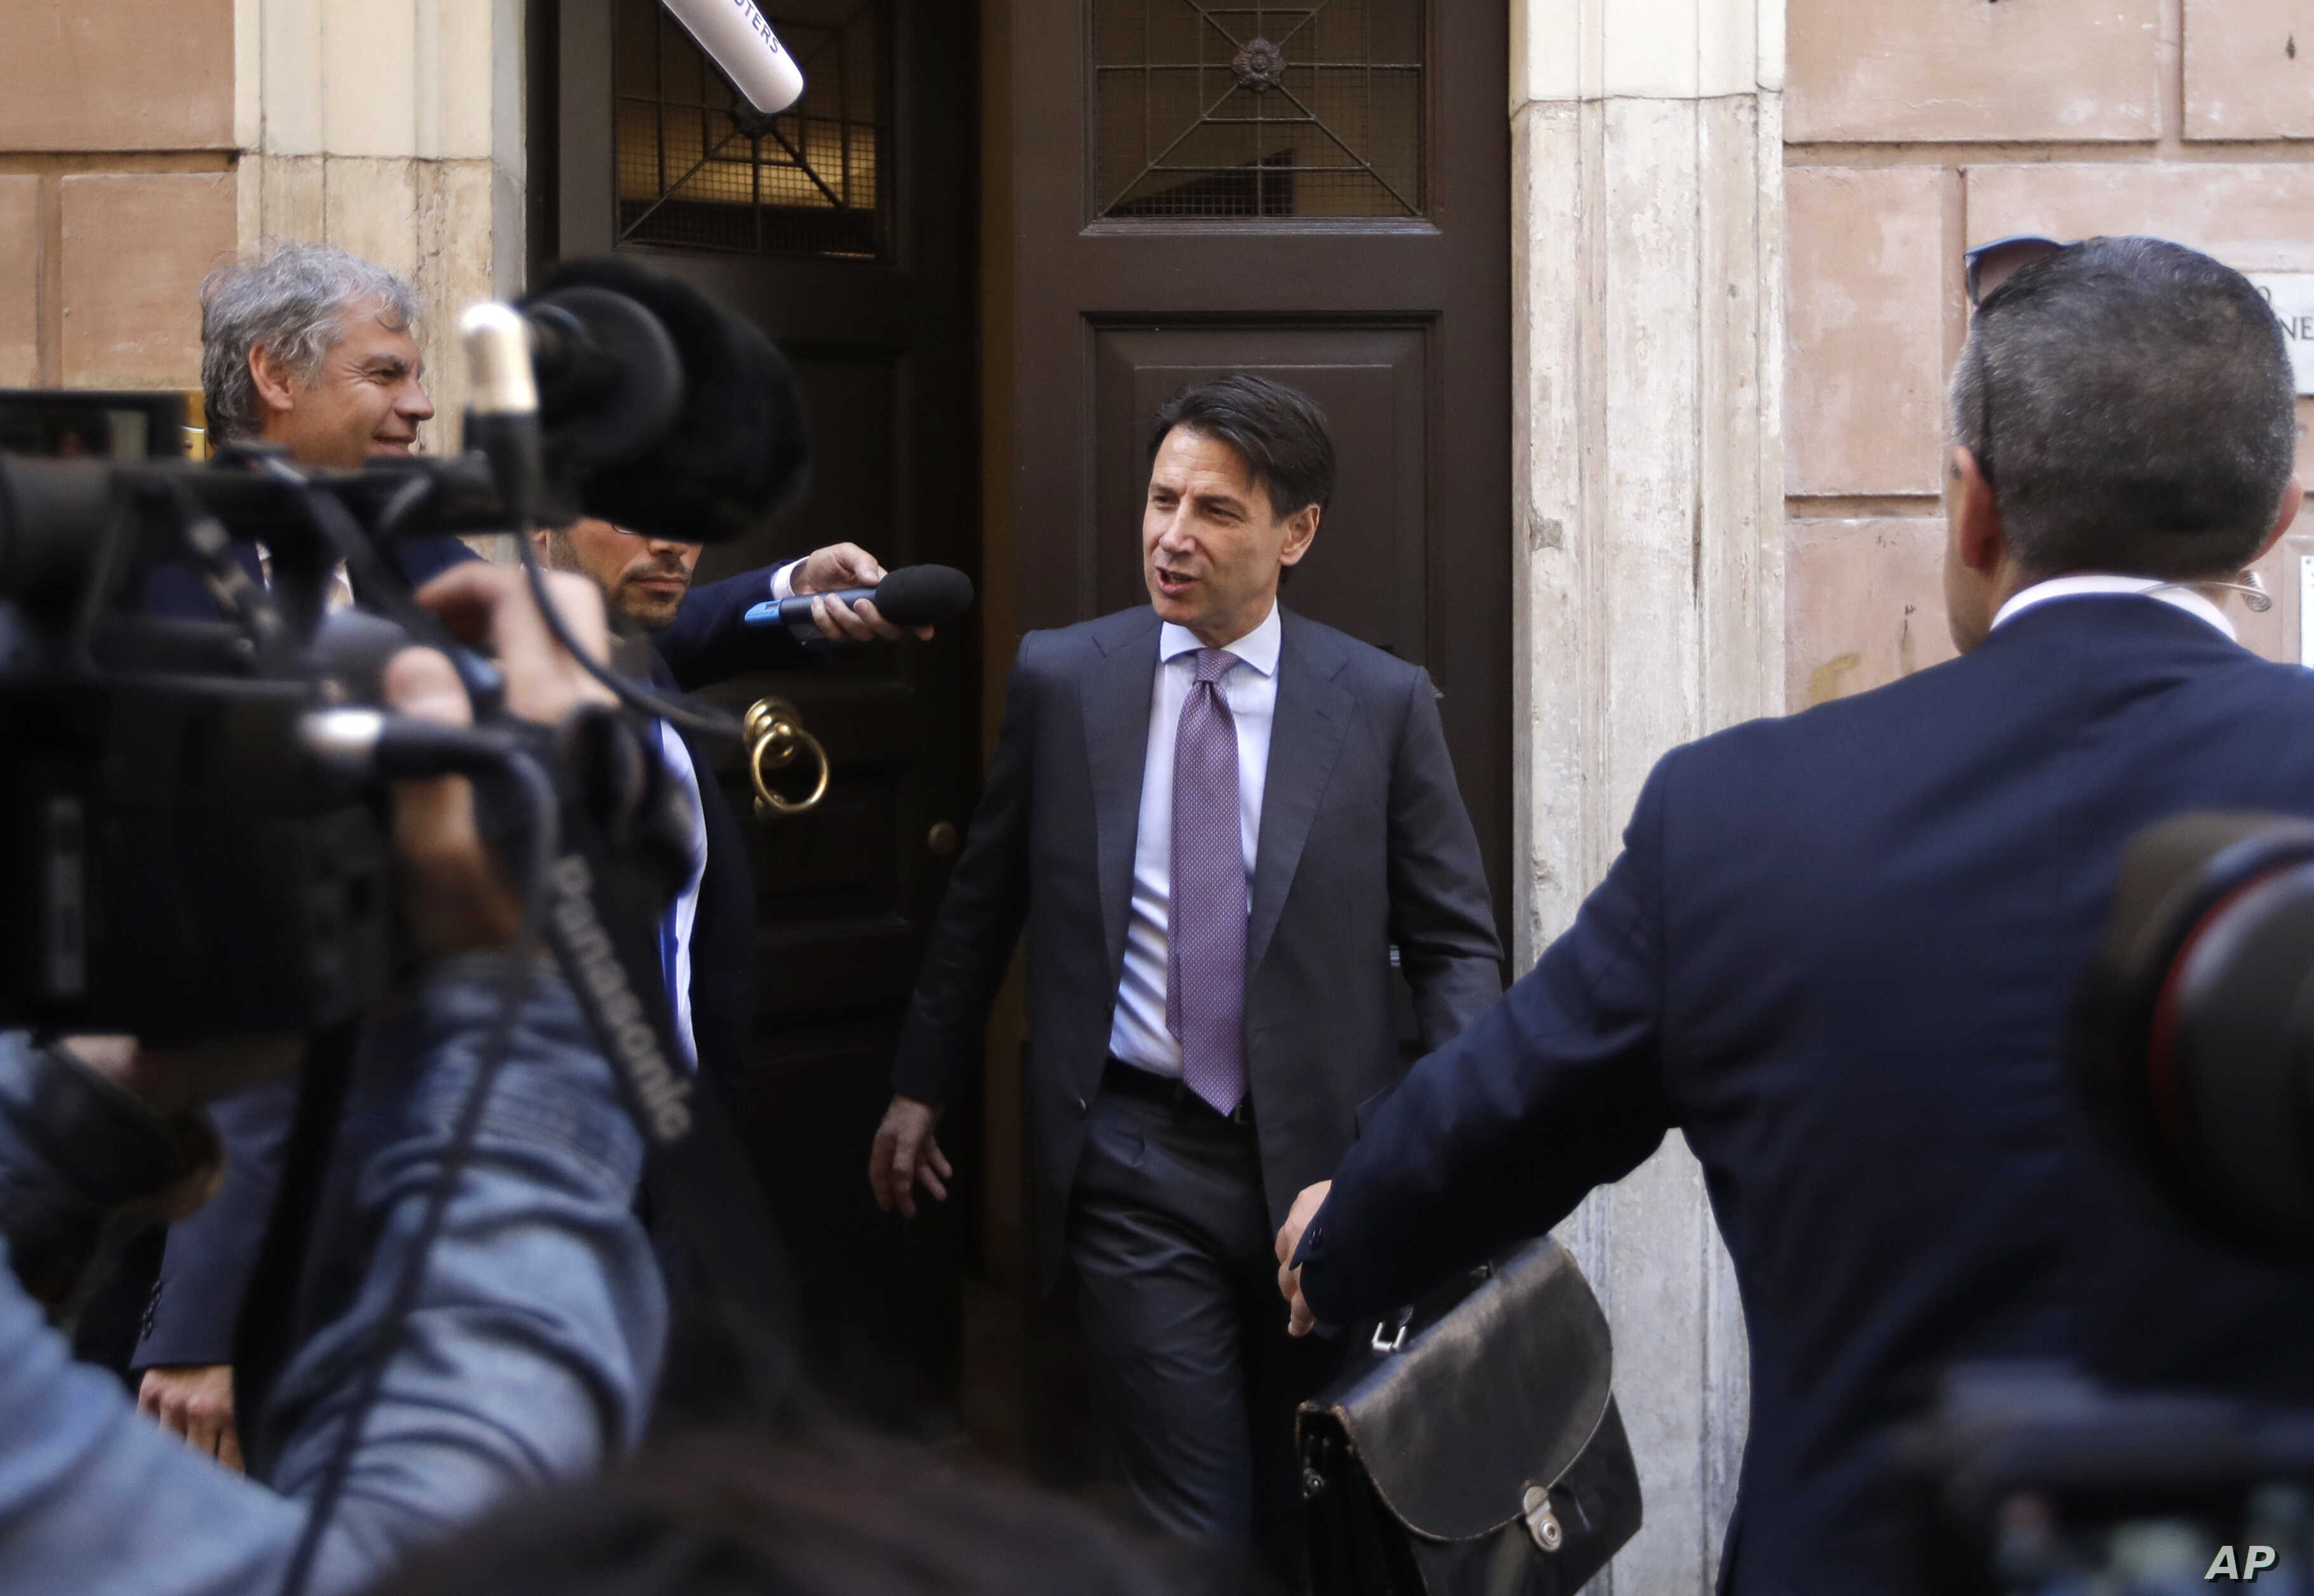 Italian Premier-designate Giuseppe Conte (C) is approached by journalists as he leaves his home, in Rome, May 24, 2018.